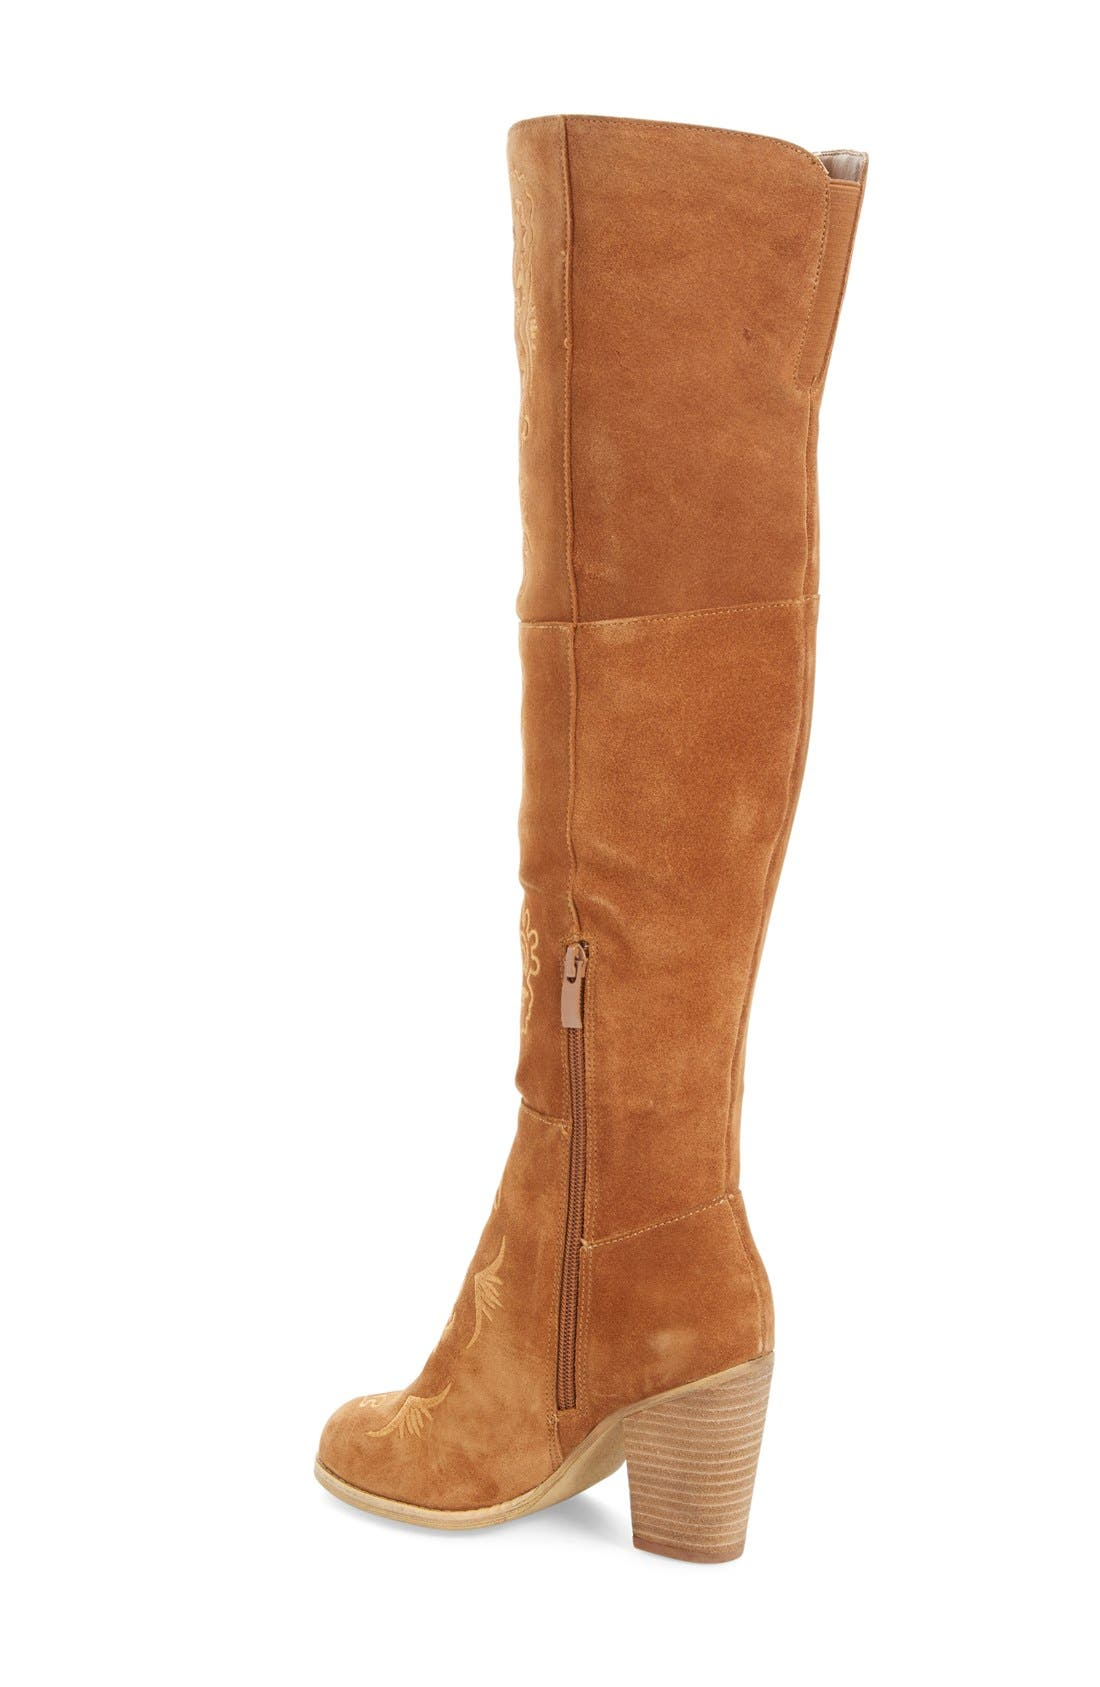 Alternate Image 2  - Sbicca Acapella Embroidered Over the Knee Boot (Women)